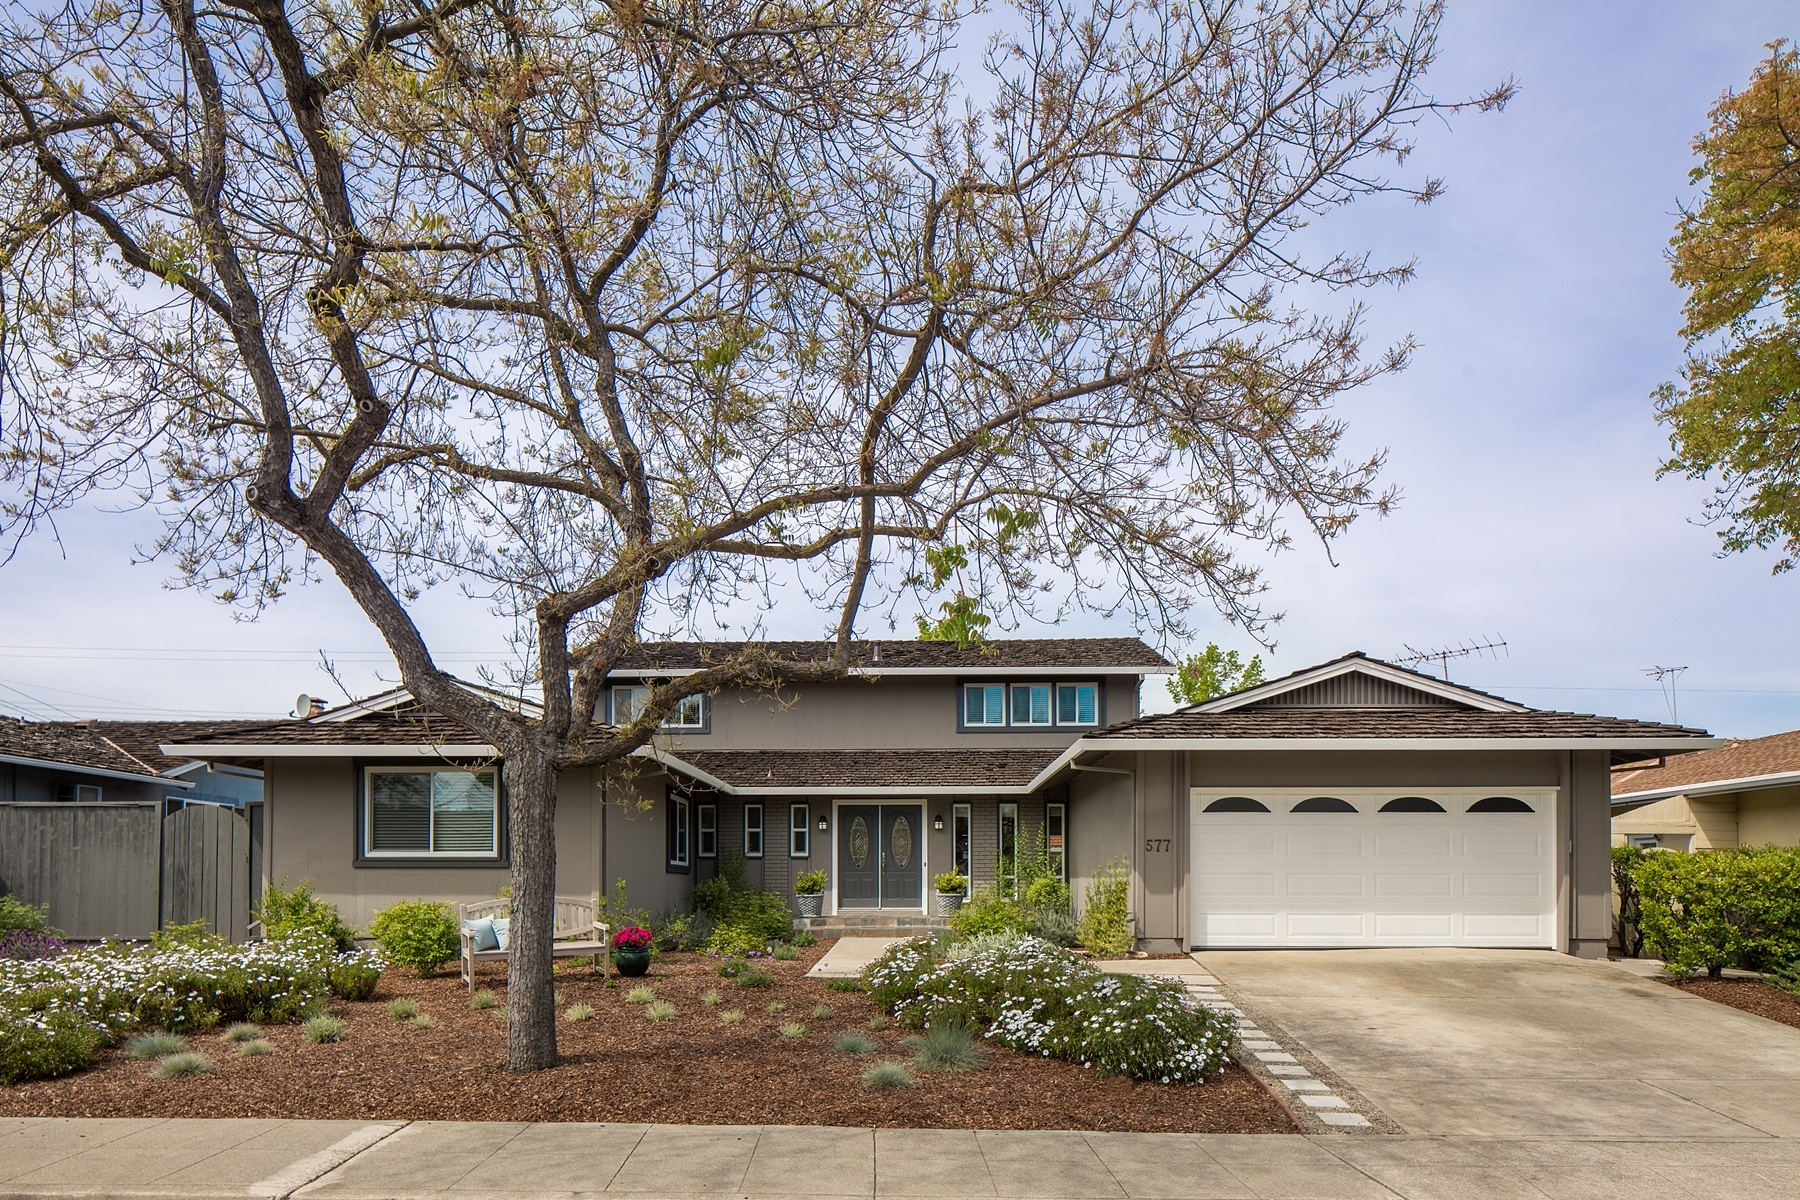 Single Family Home for Sale at Freshly Remodeled Craftsman Home 577 Endicott Drive Sunnyvale, California 94087 United States